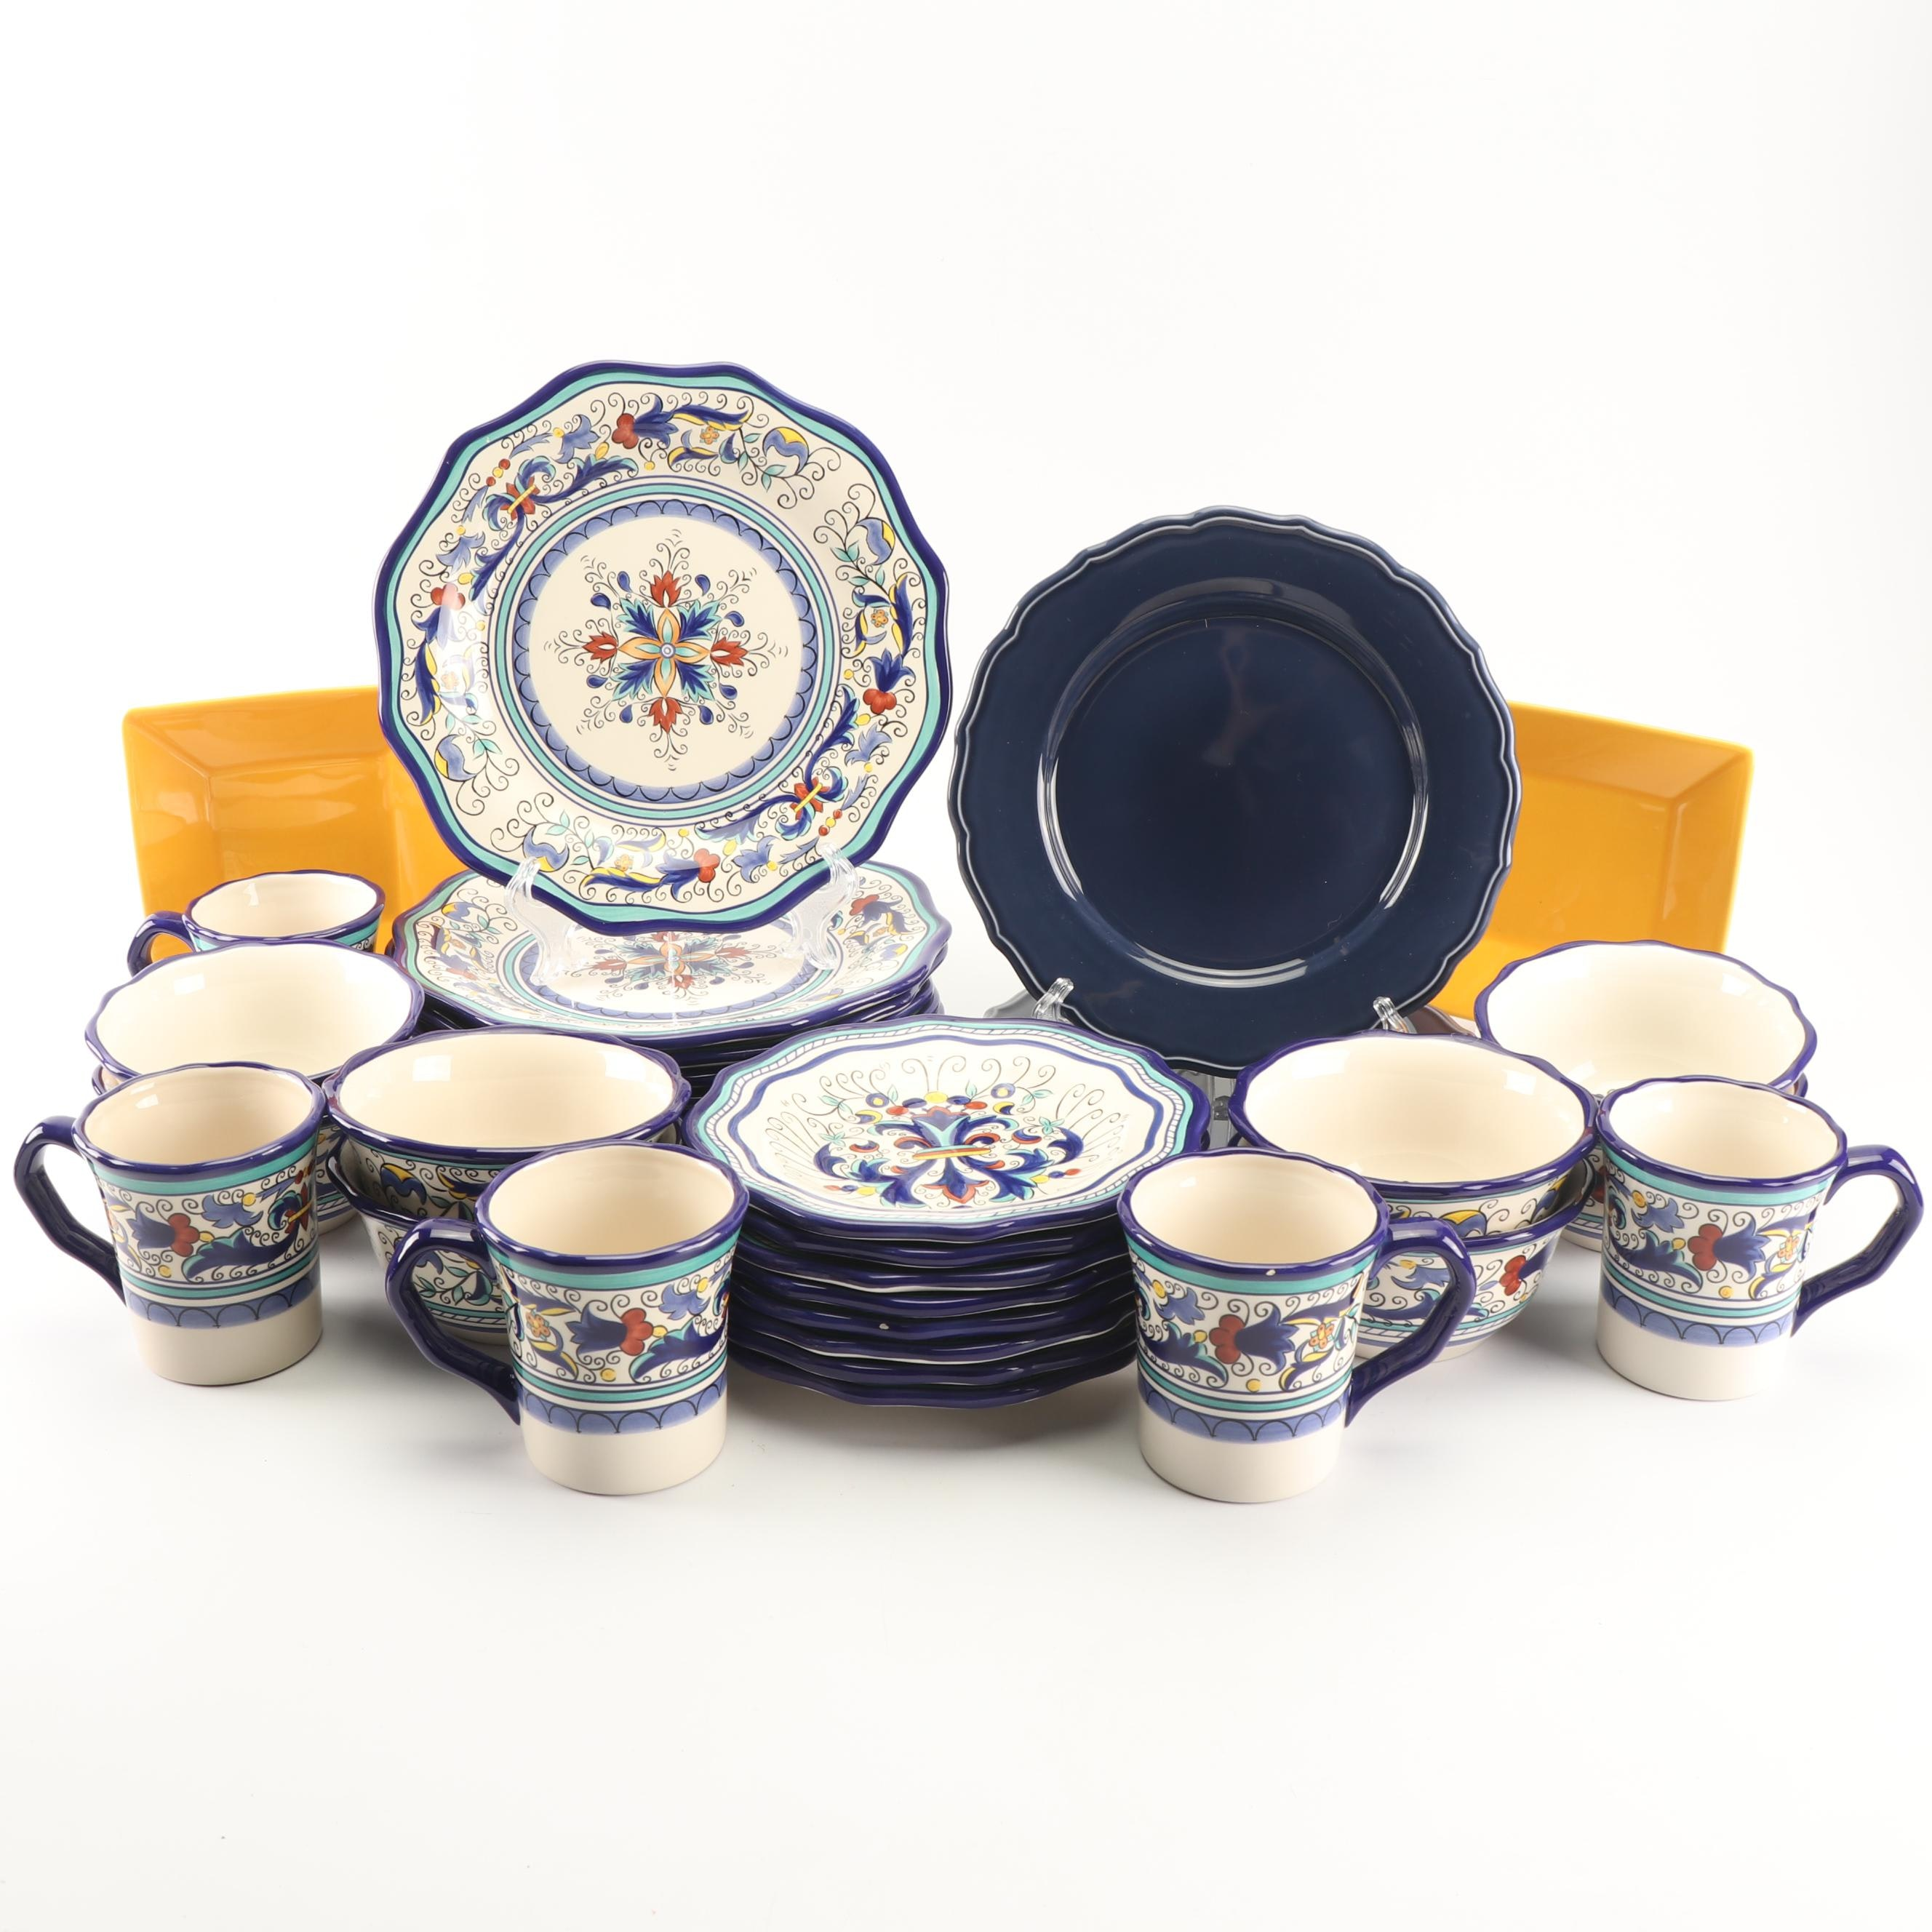 """Pier 1 Imports """"San Marino"""" and Other Dinnerware"""